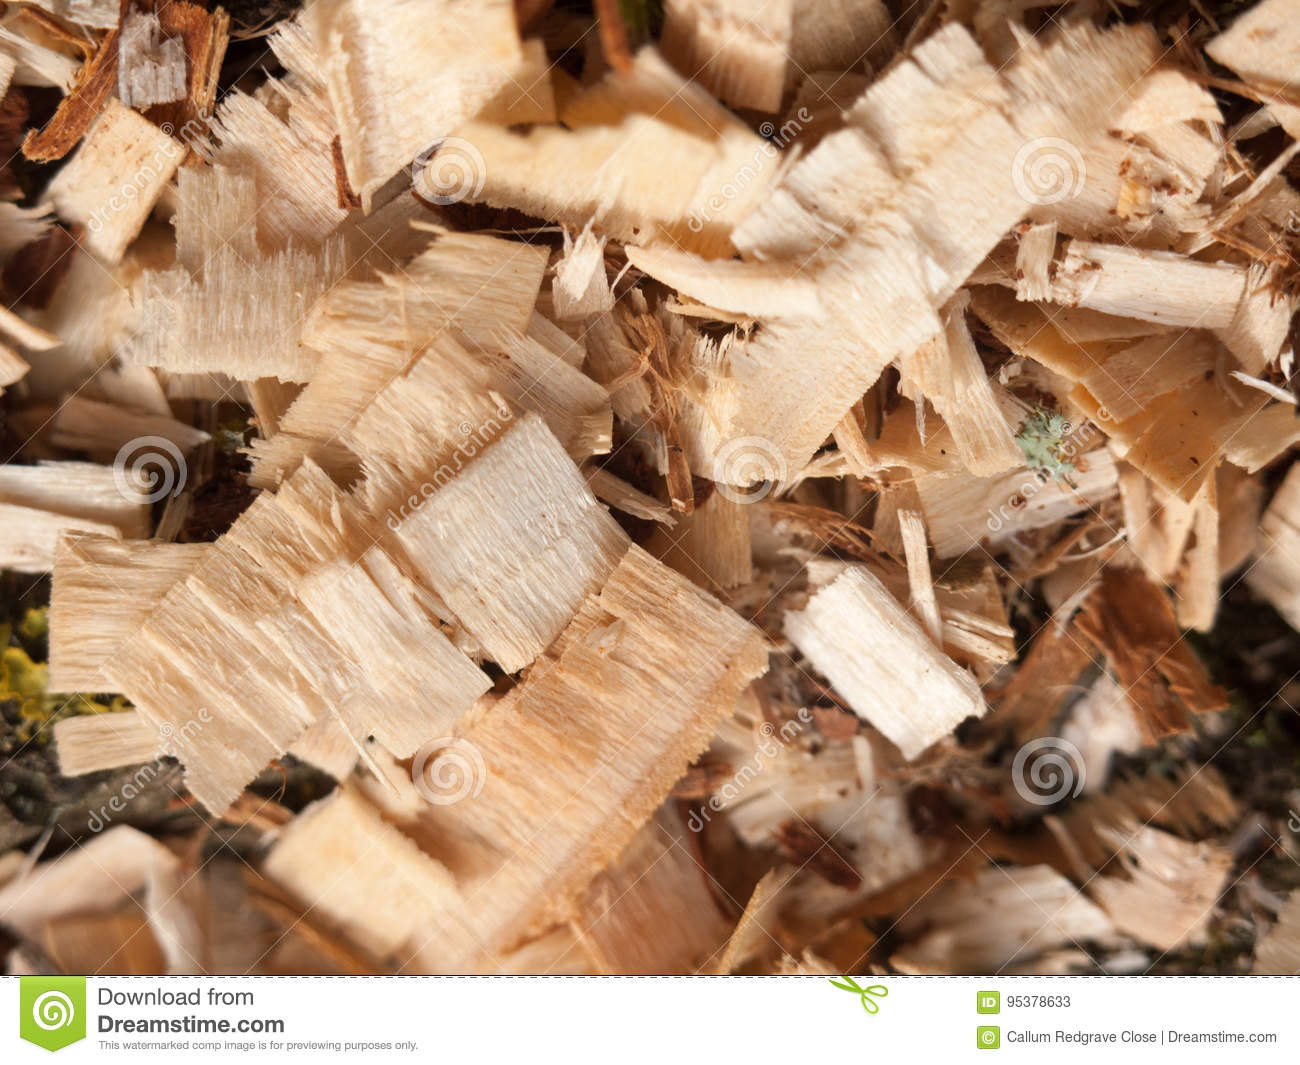 Texture and detail of wood chippings outside overhead